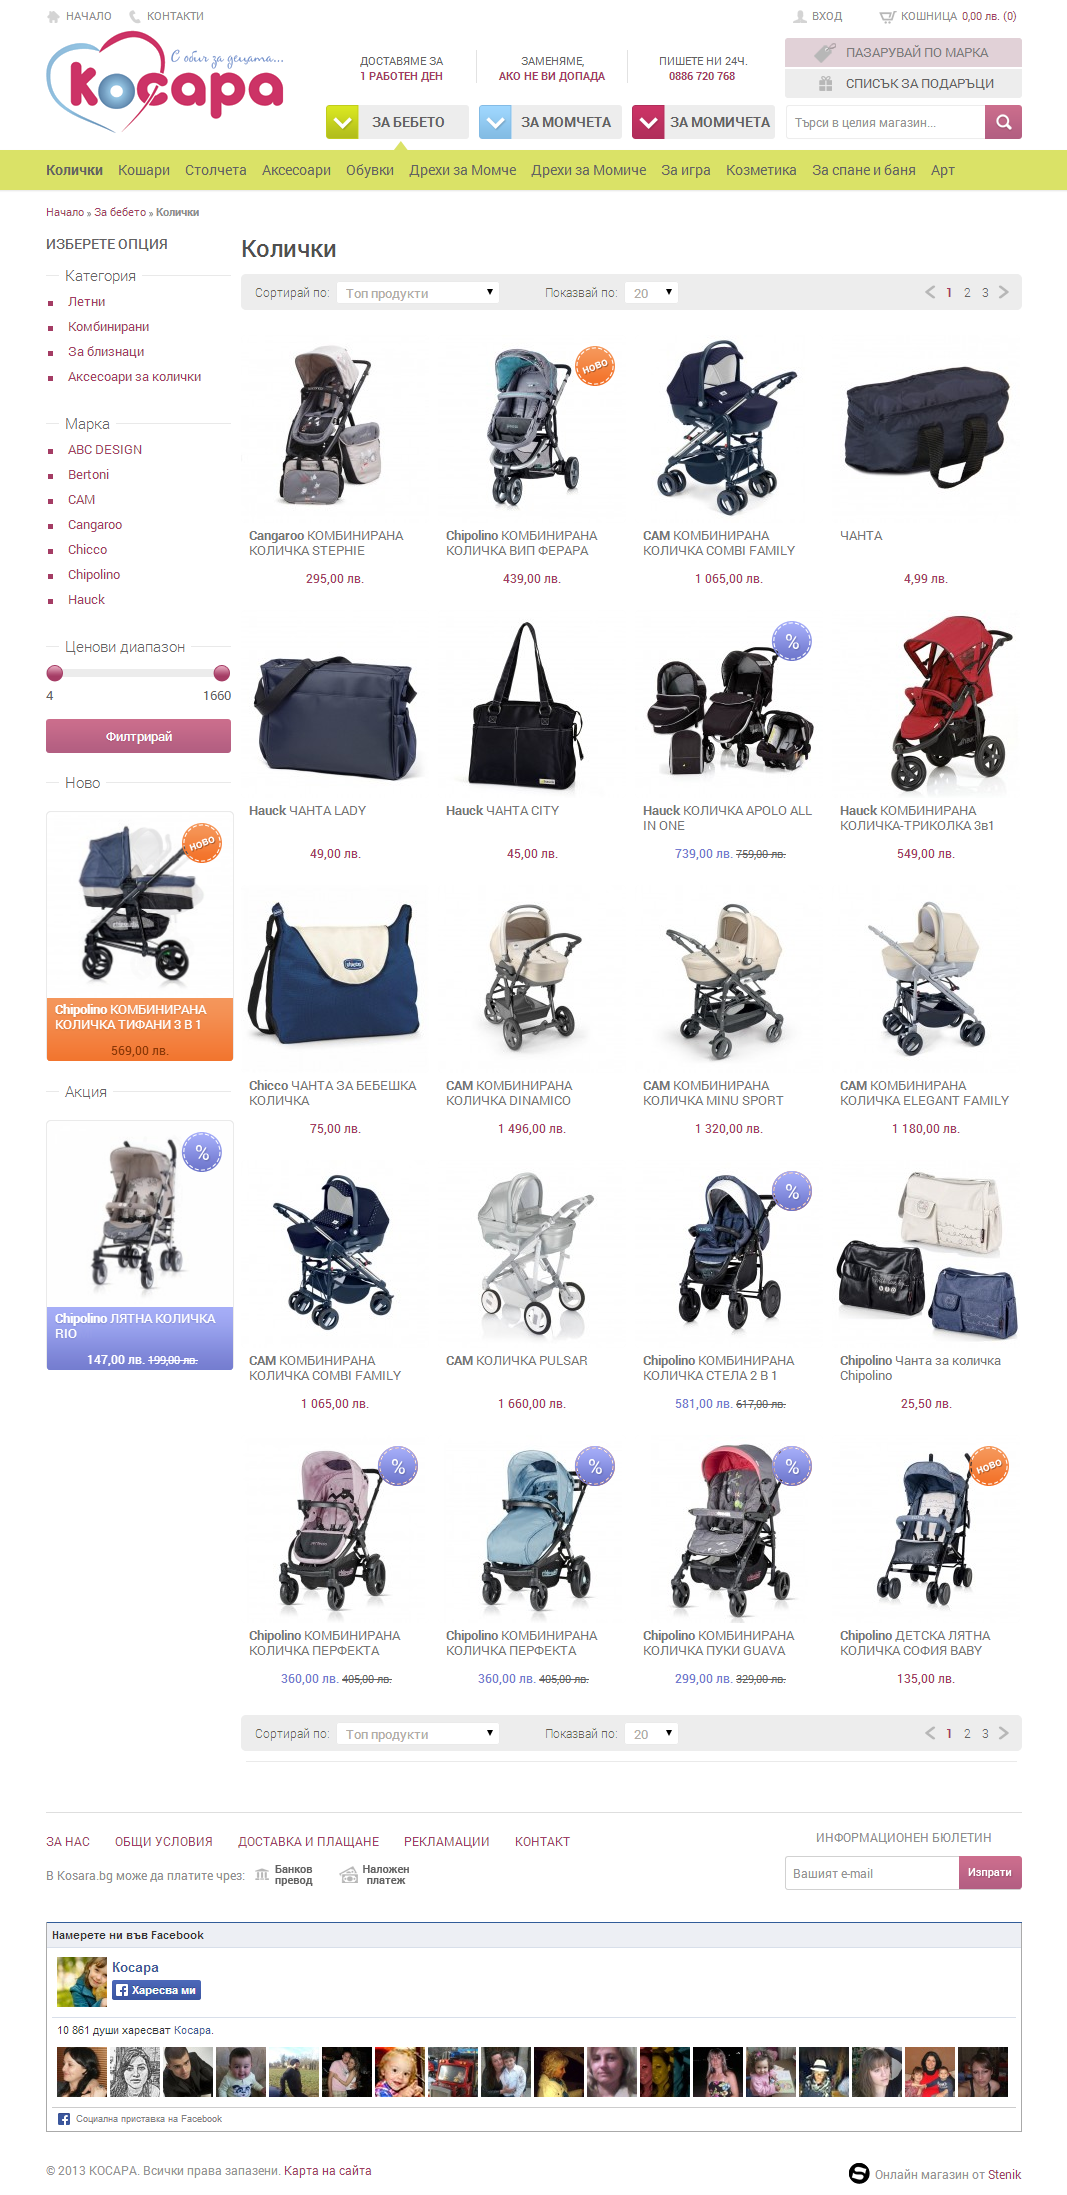 eCommerce website for babies & kids Kosara.bg, Kosara - Online Shops, Stenik, Magento